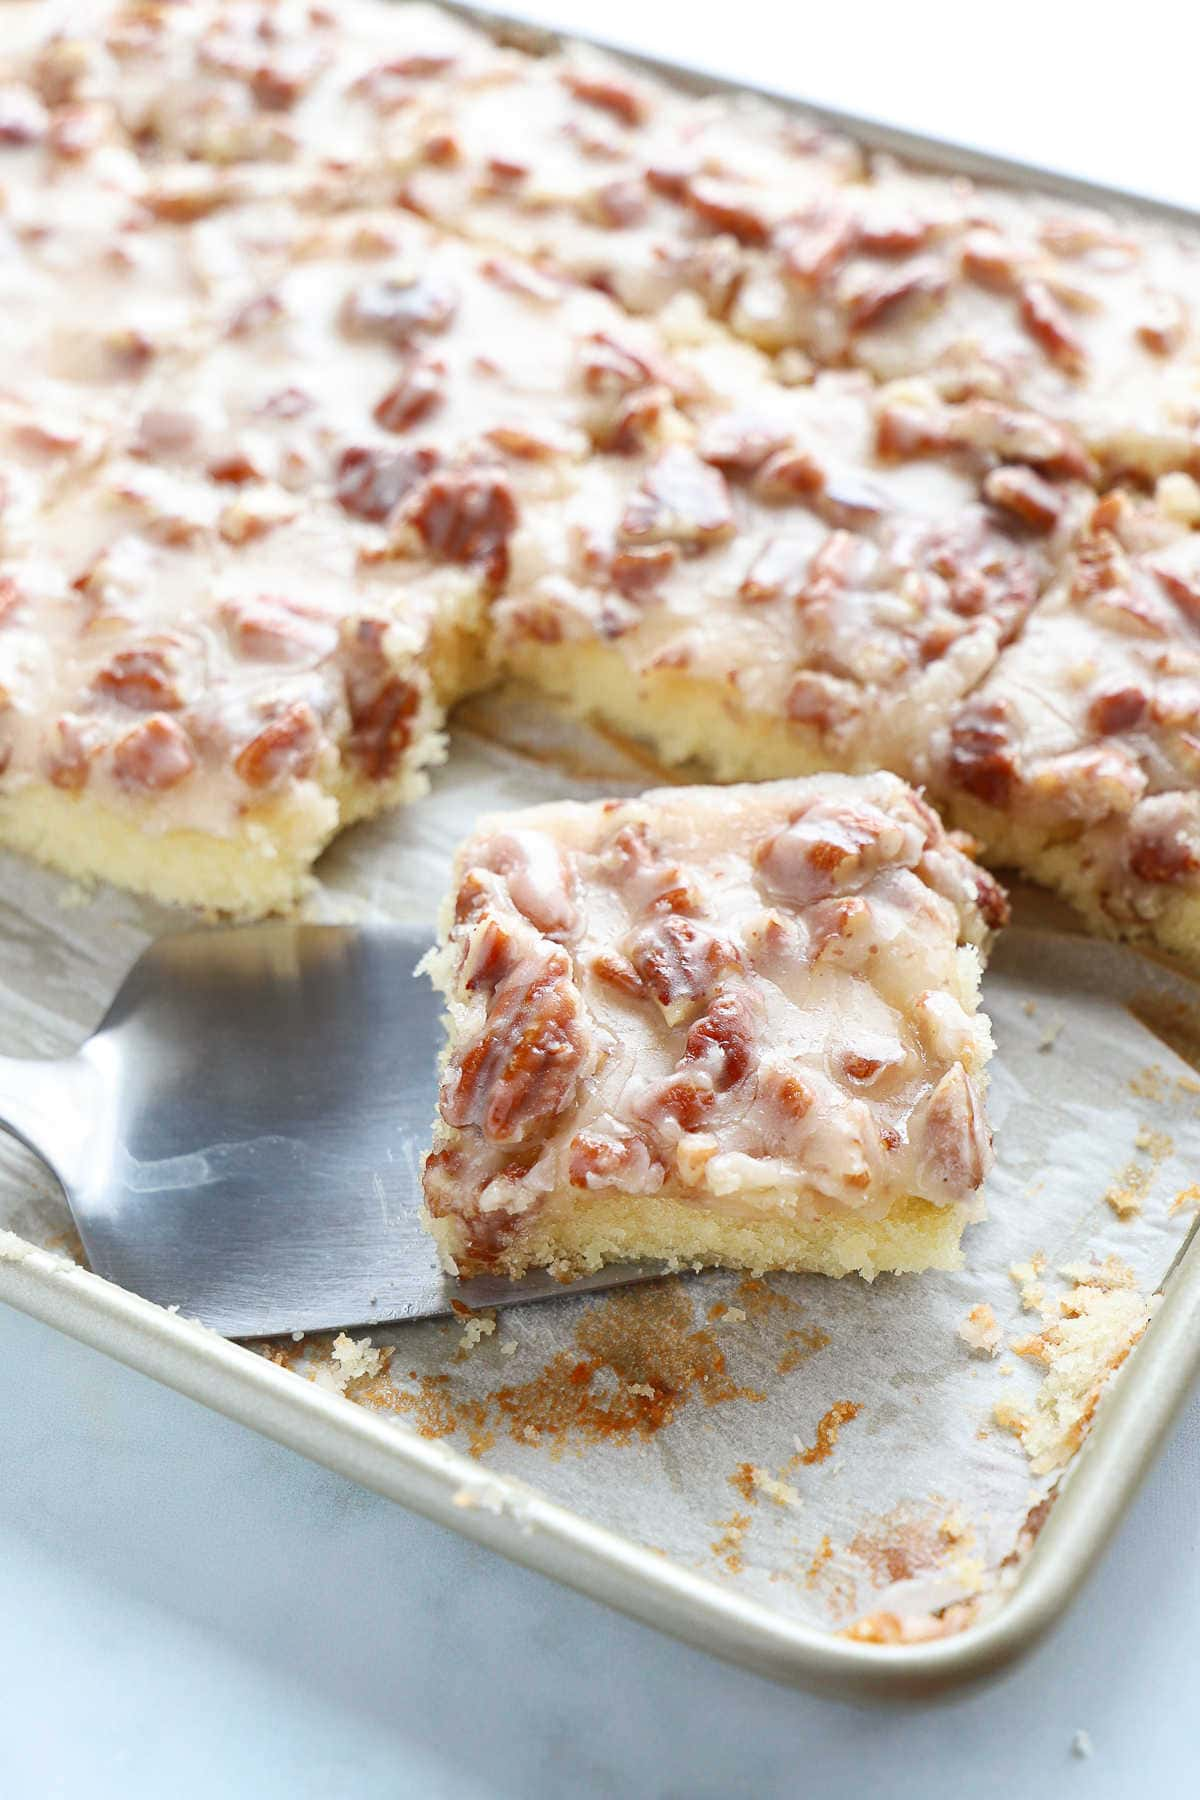 Vanilla sheet cake with a white fudge and pecan icing in a baking sheet.